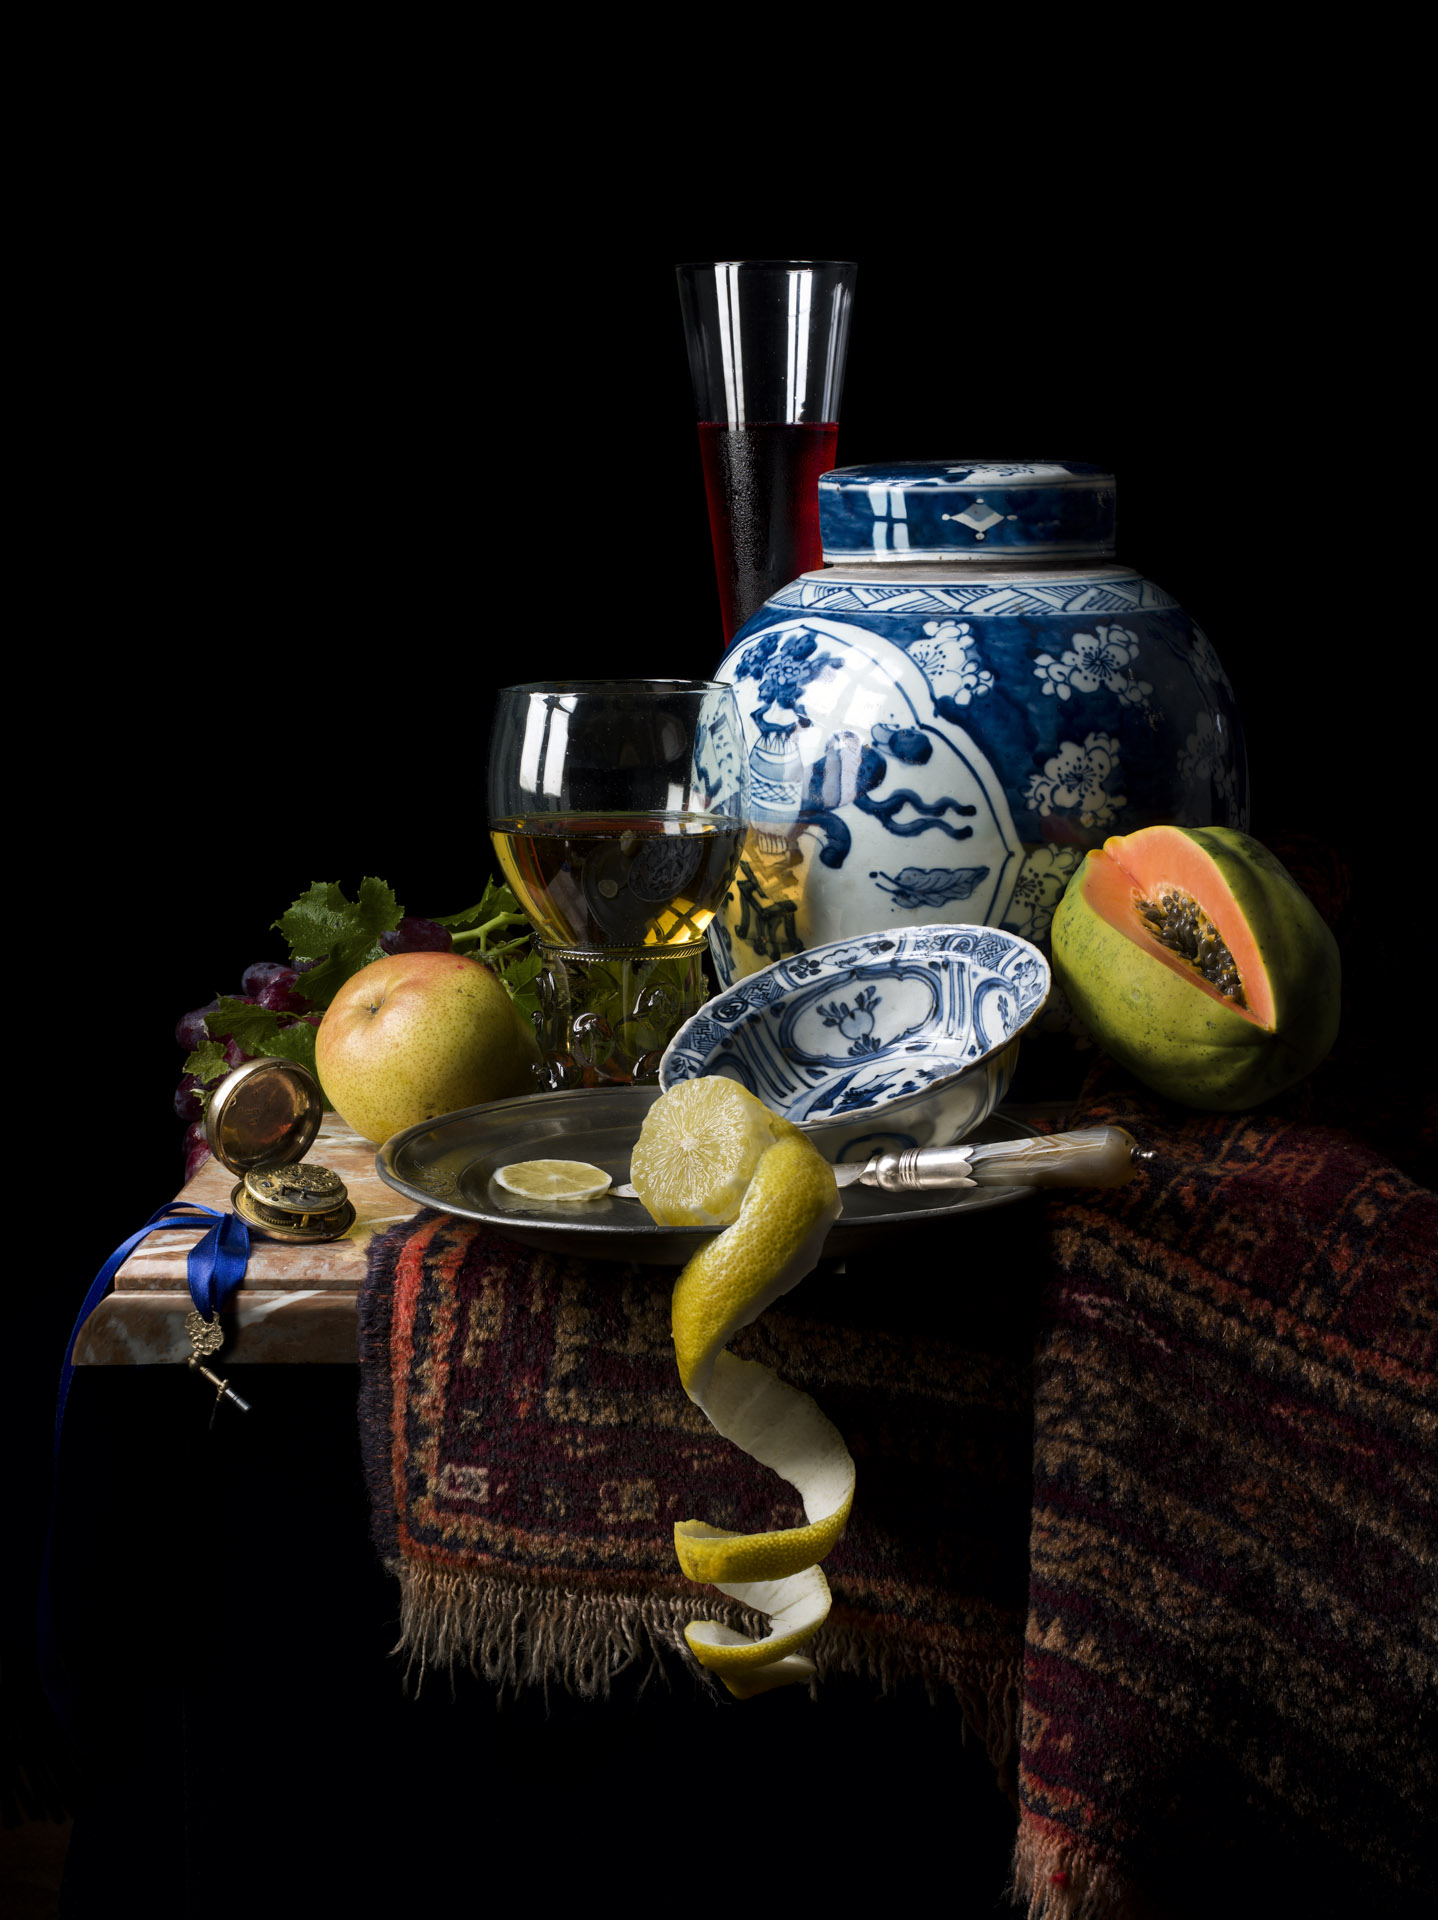 Still life with ginger jar and Kraak bowl